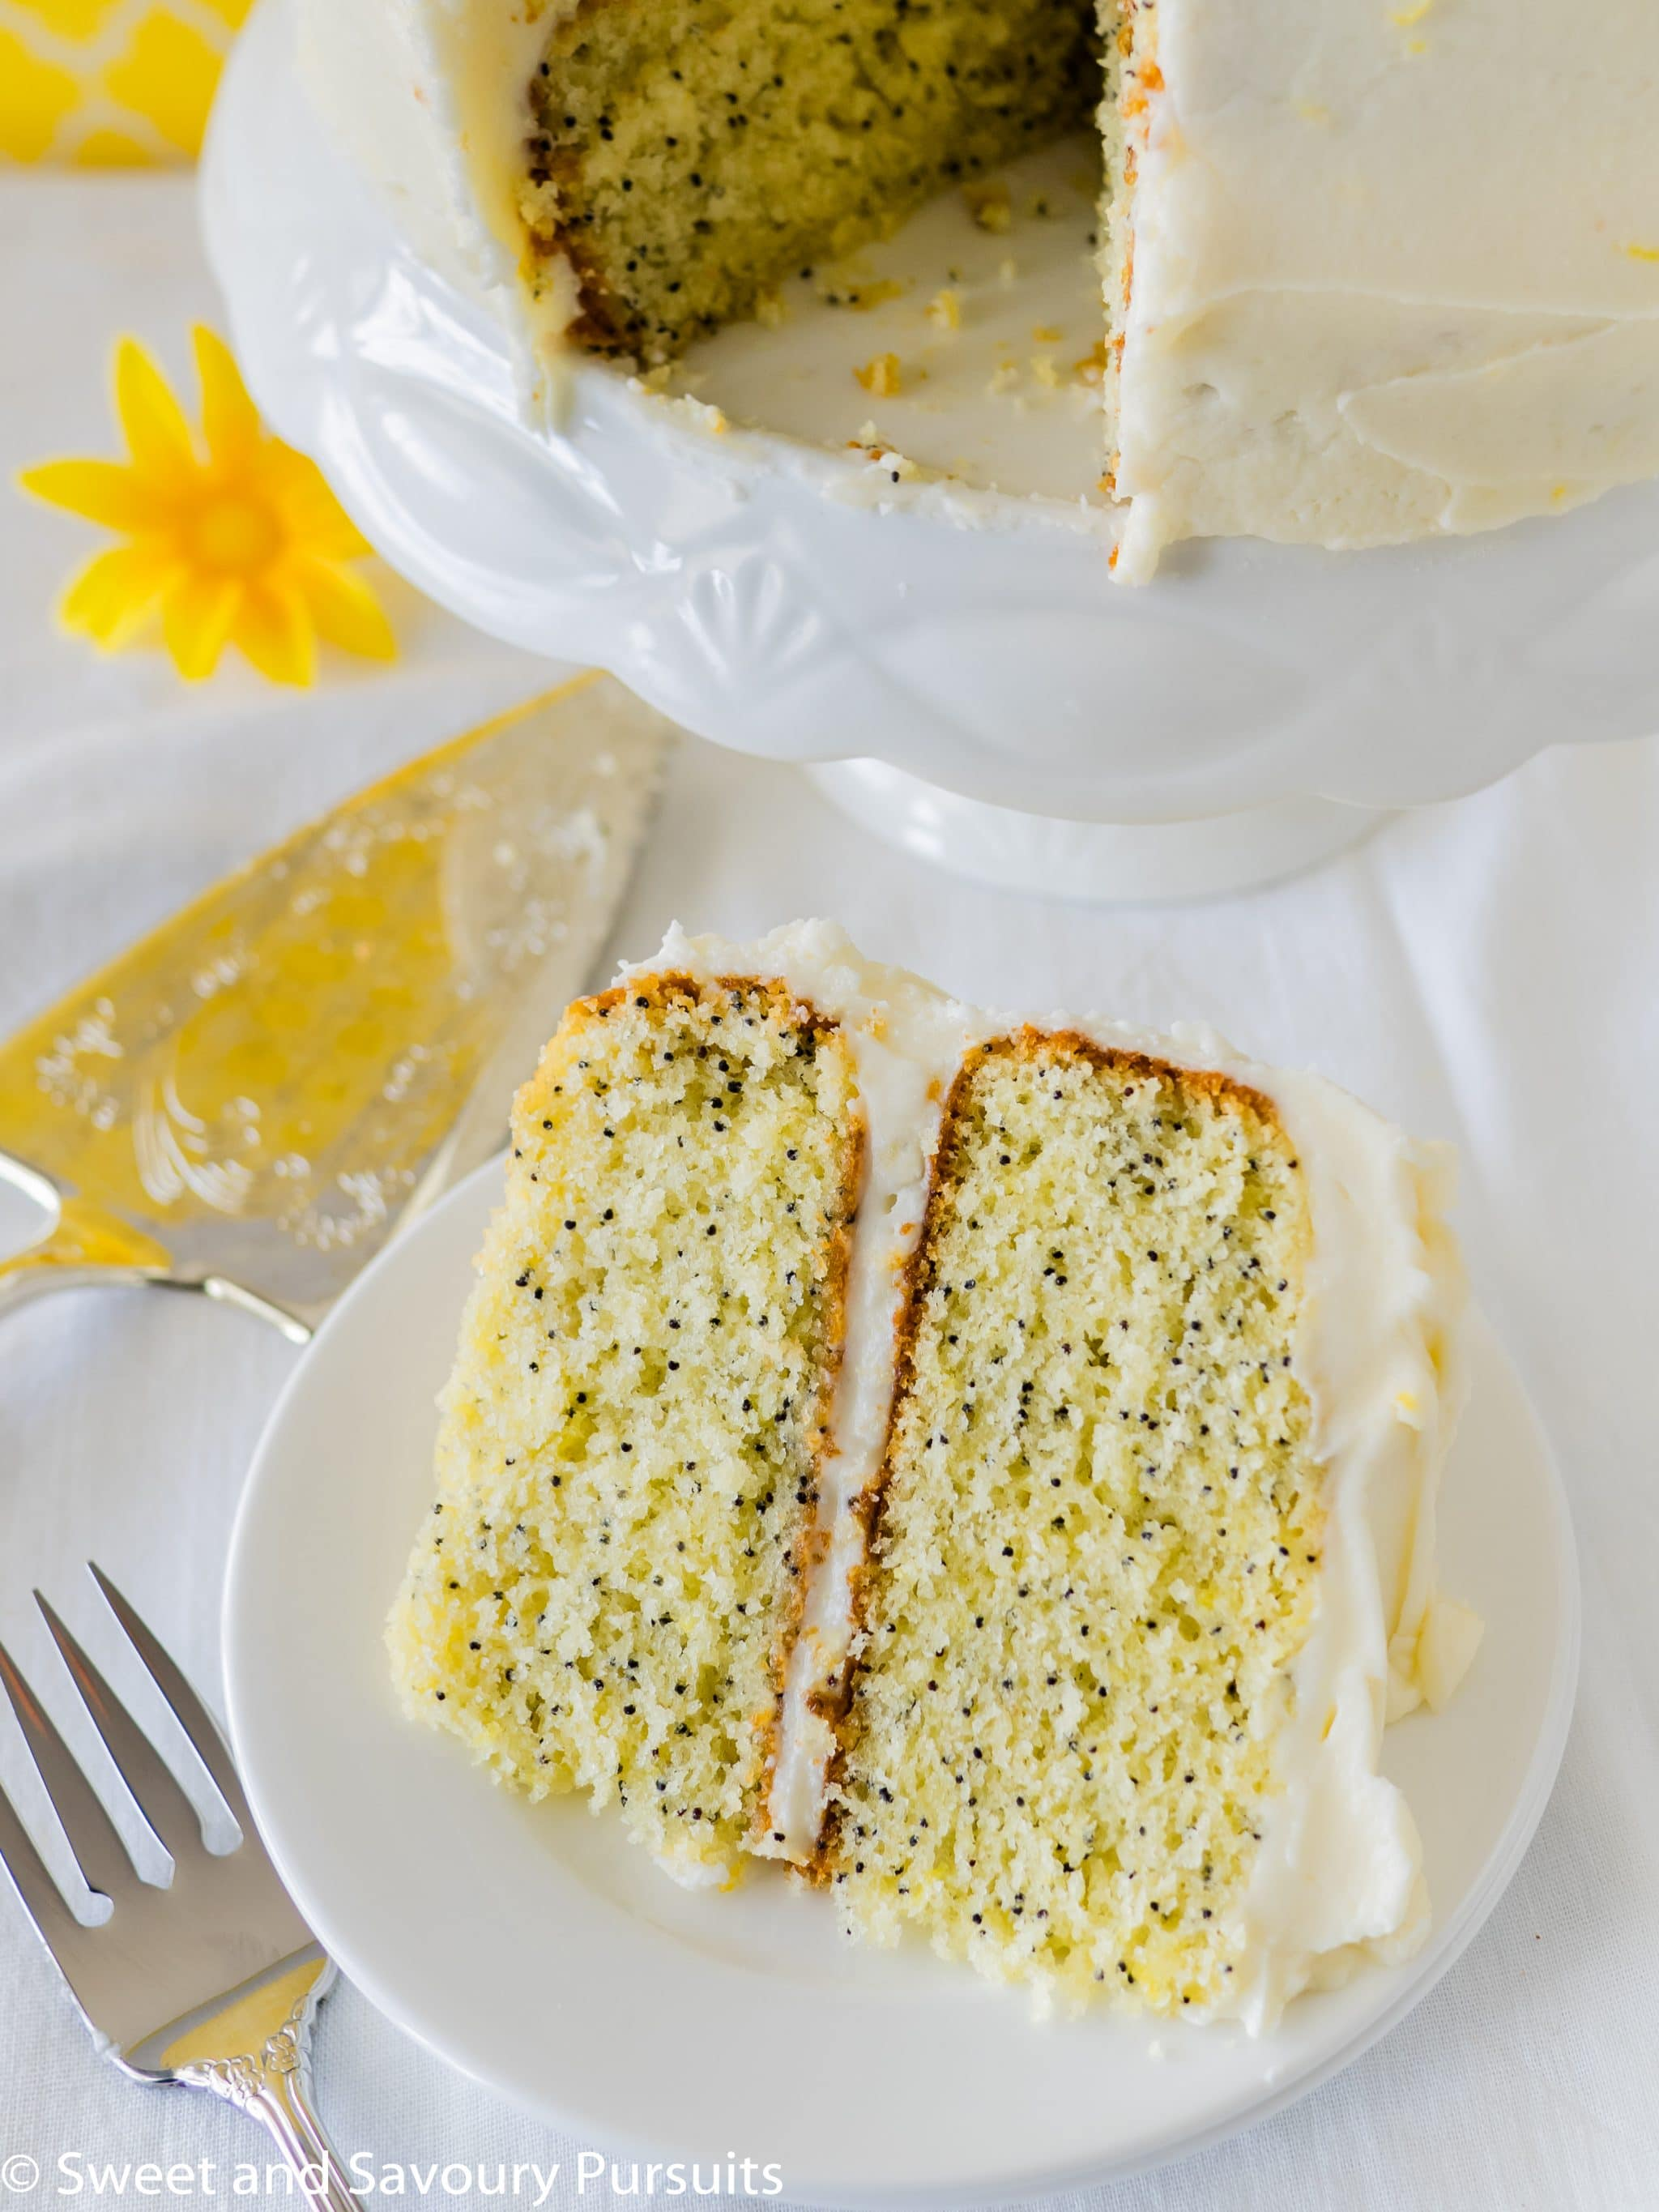 Slice of a layered Lemon Poppy Seed Cake with Cream Cheese Frosting.